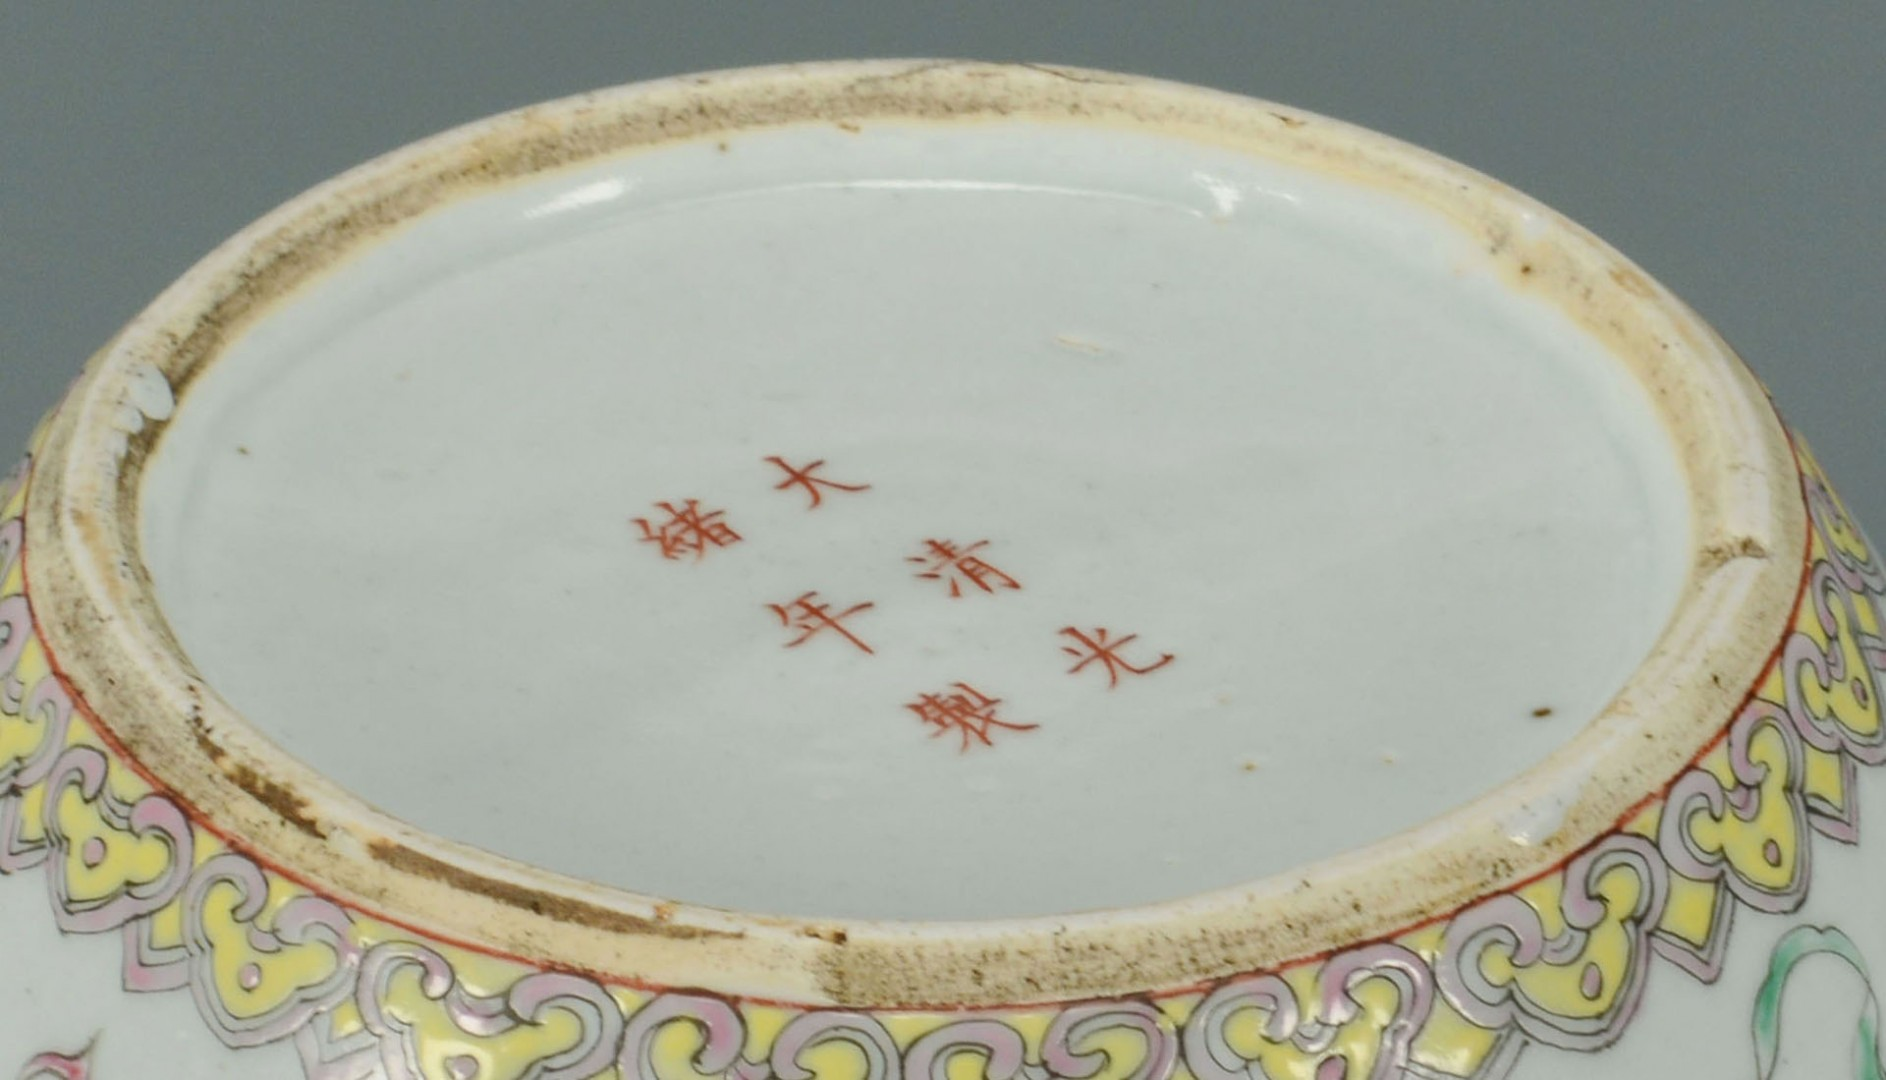 Lot 234: Chinese Porcelain Famille Rose Bowl